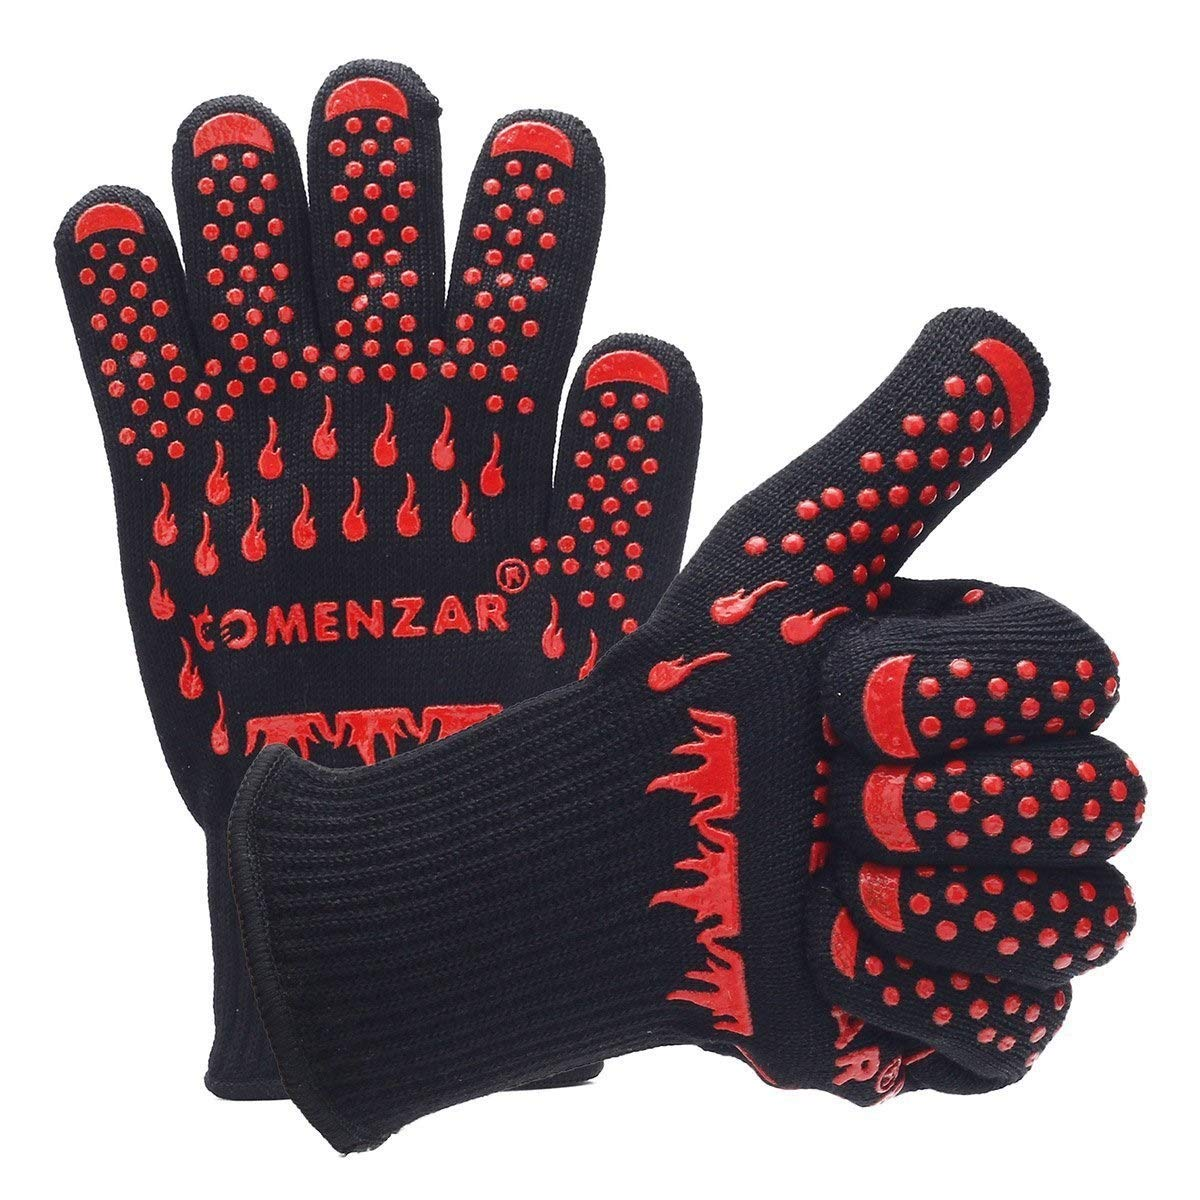 ZJYSM Comfortable Wearable Flexible Lightweight White Aramid Insulation High Temperature Flame Retardant Fire Point Silicone Anti-scalding Extra Large Oven BBQ BBQ Gloves Gloves